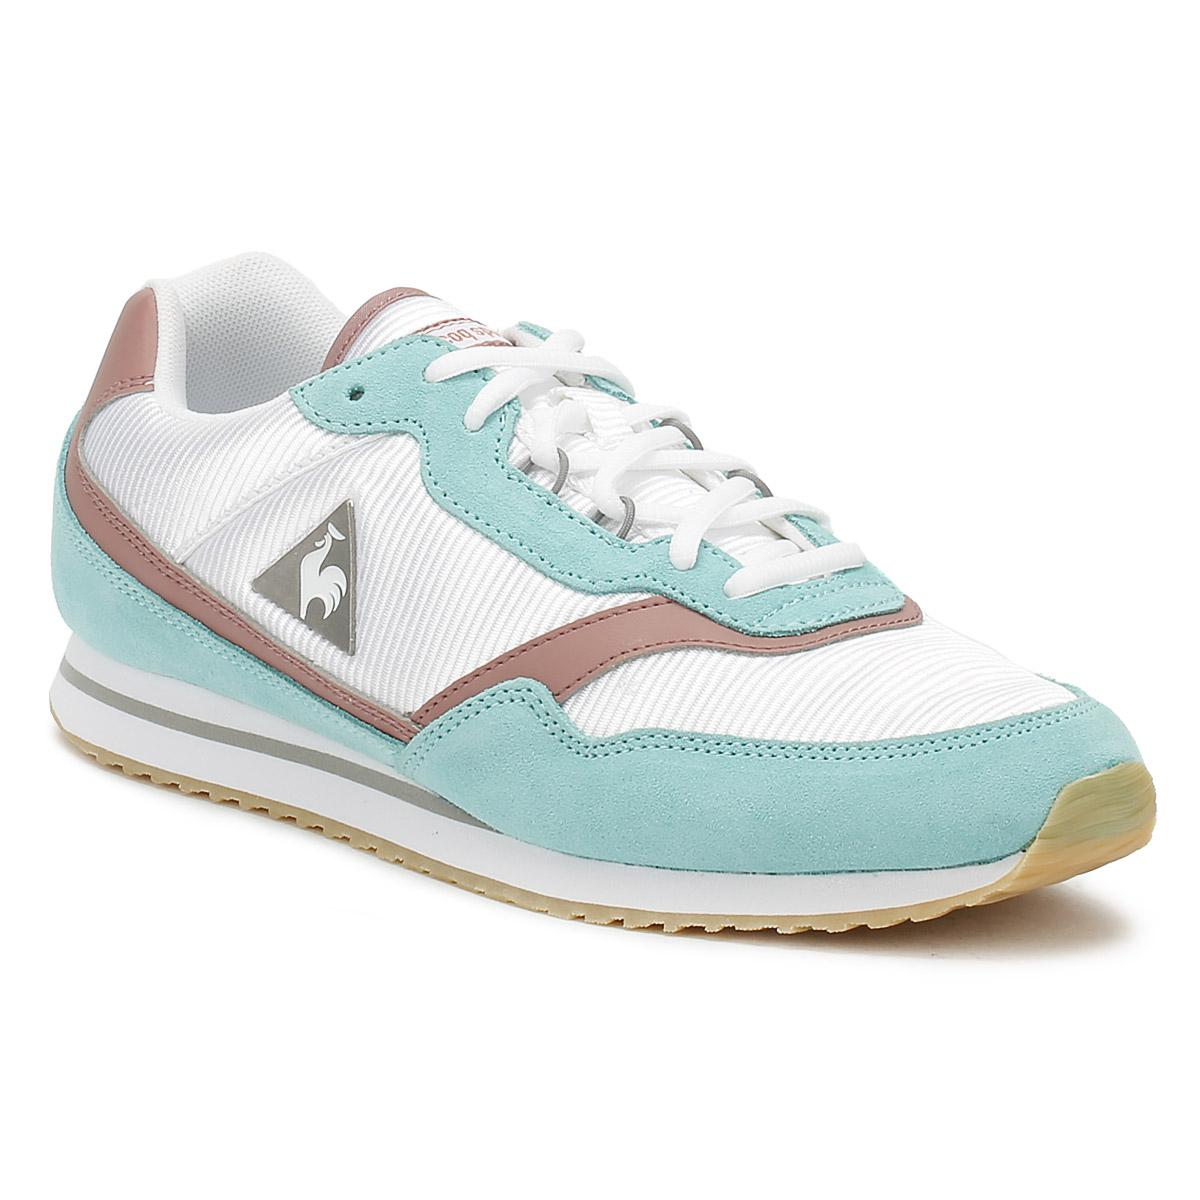 a9c2d0bb25bf Le Coq Sportif Womens Aruba Blue  Ash Rose Louise Suede Trainers in ...